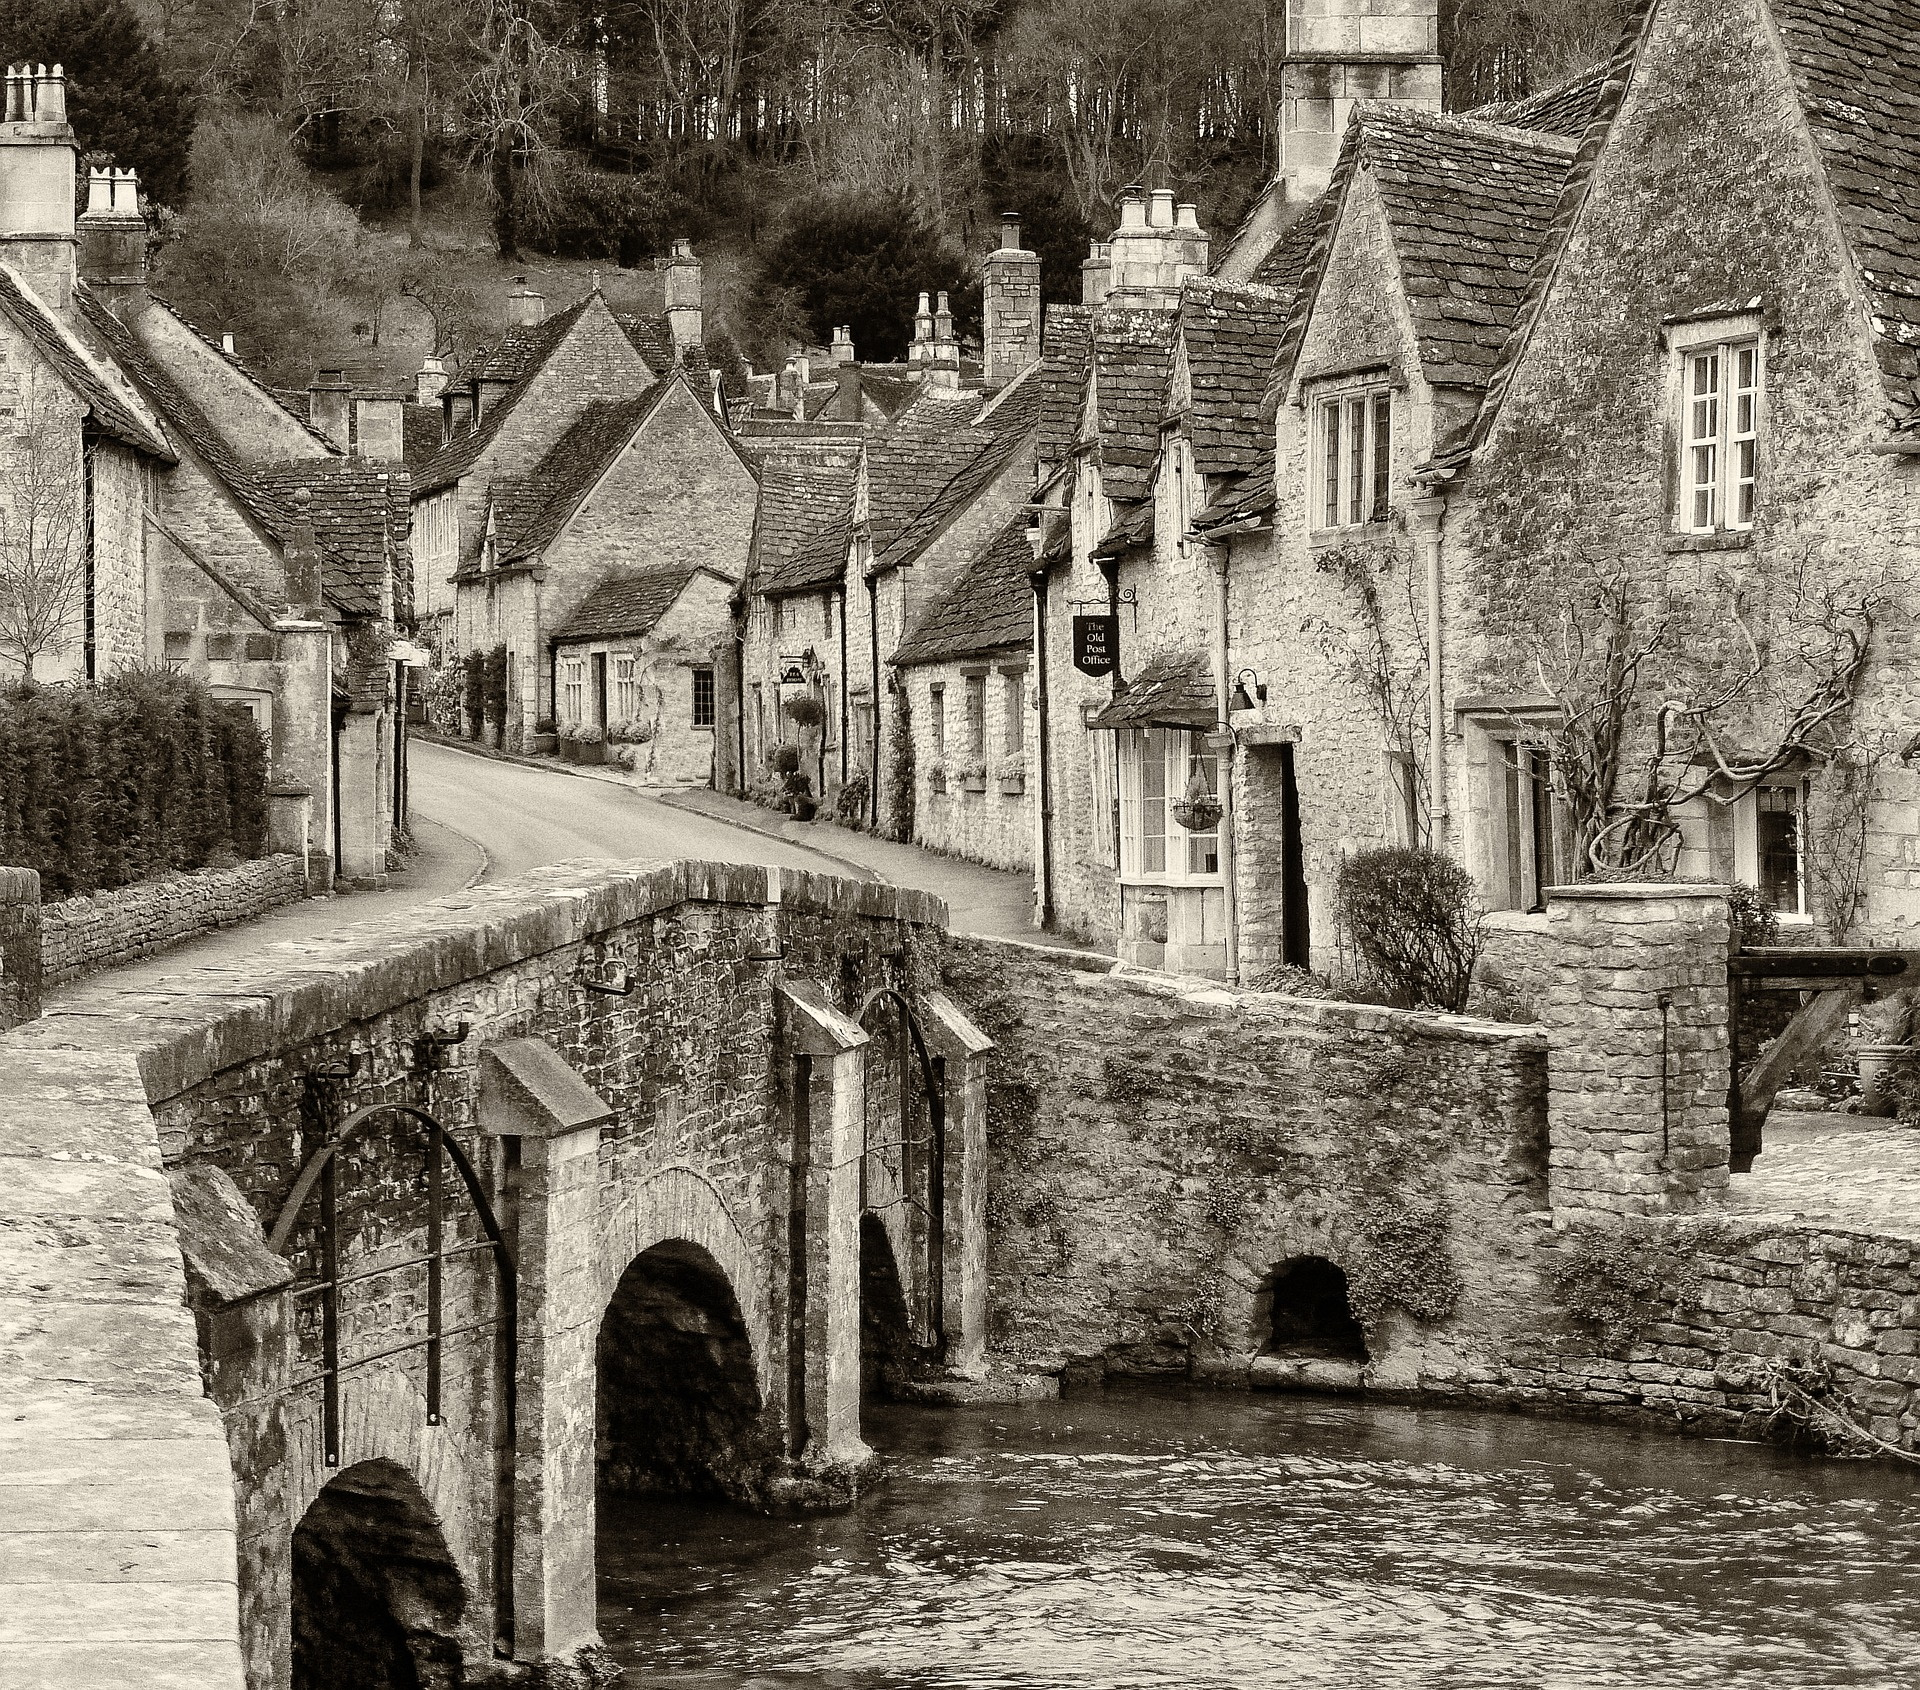 Beautiful picturesque village of Castle Combe in Wiltshire